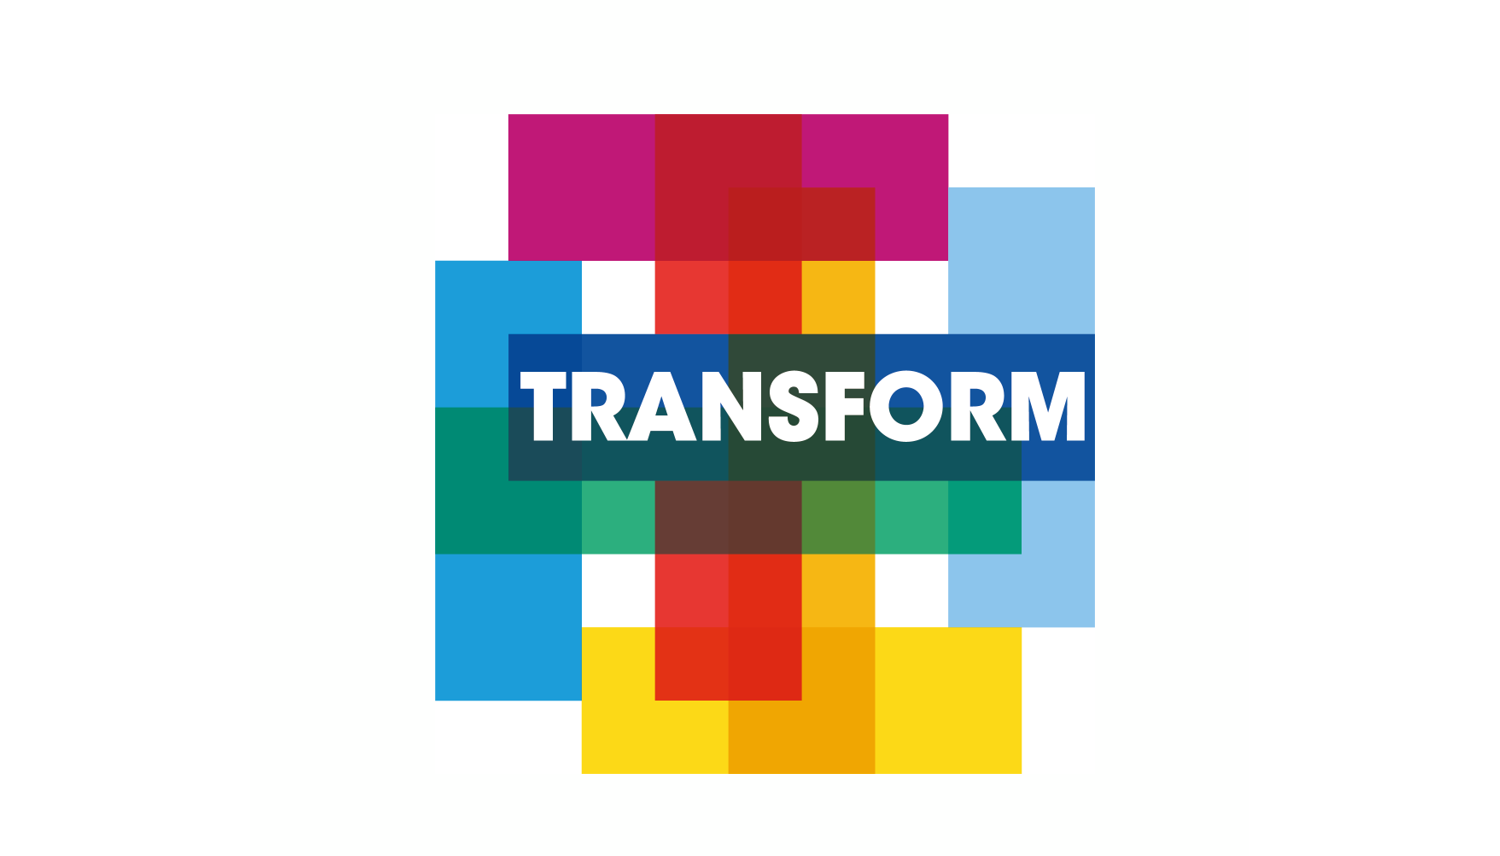 Transform is a collaboration between Unilever and DFID, intended to reduce global poverty and improve the living standards of the poorest people in society, in a sustainable fashion.   Learn More